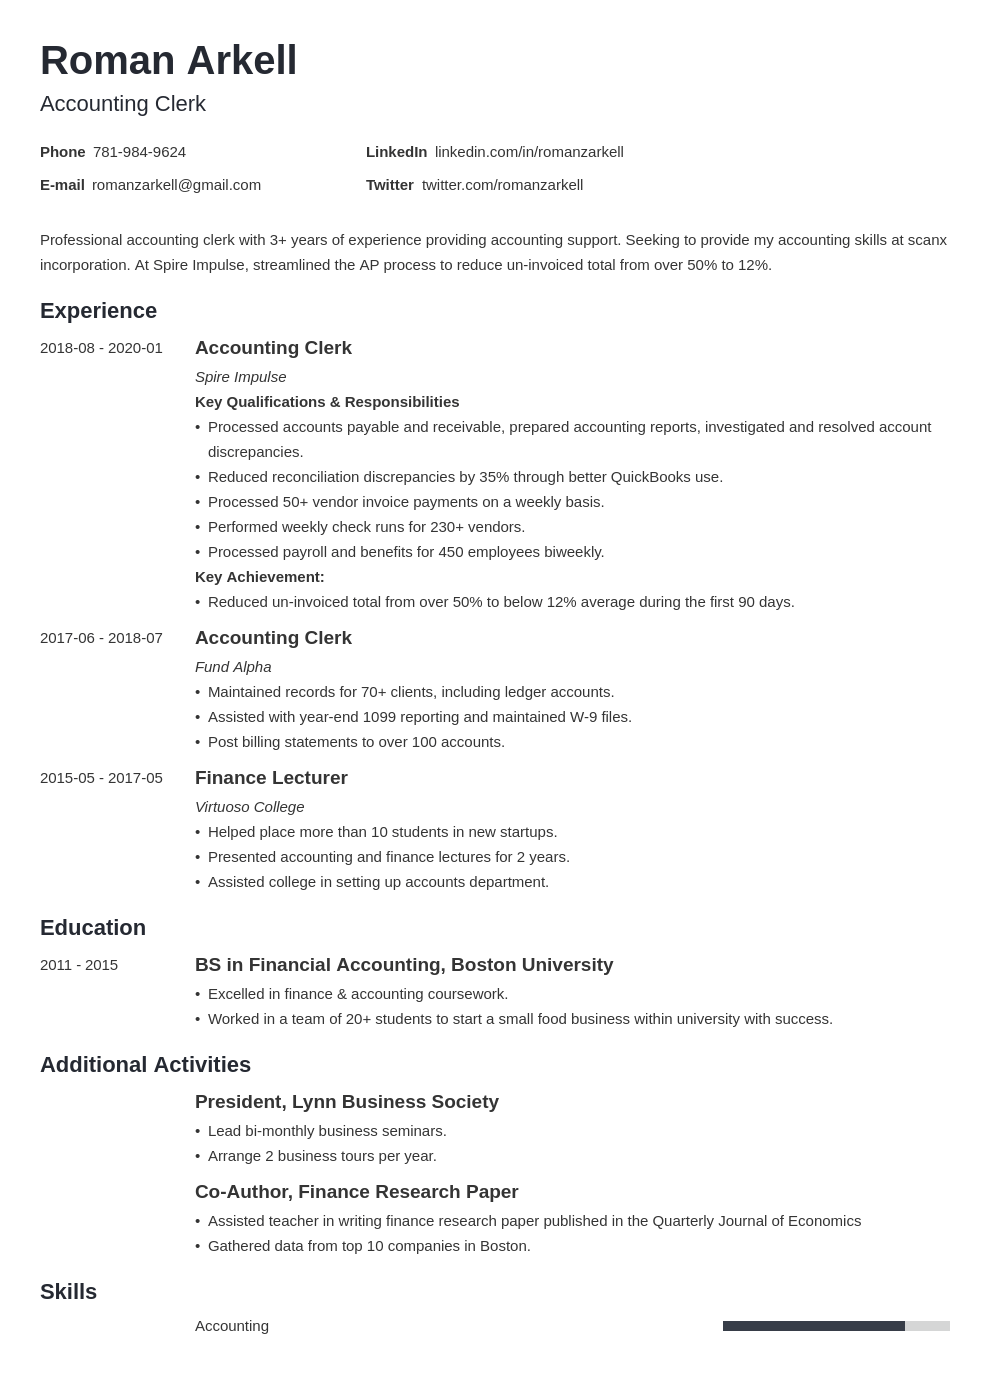 11 Accounting Job Description For Resume In 2021 Resume Examples Job Resume Examples Accounting Jobs